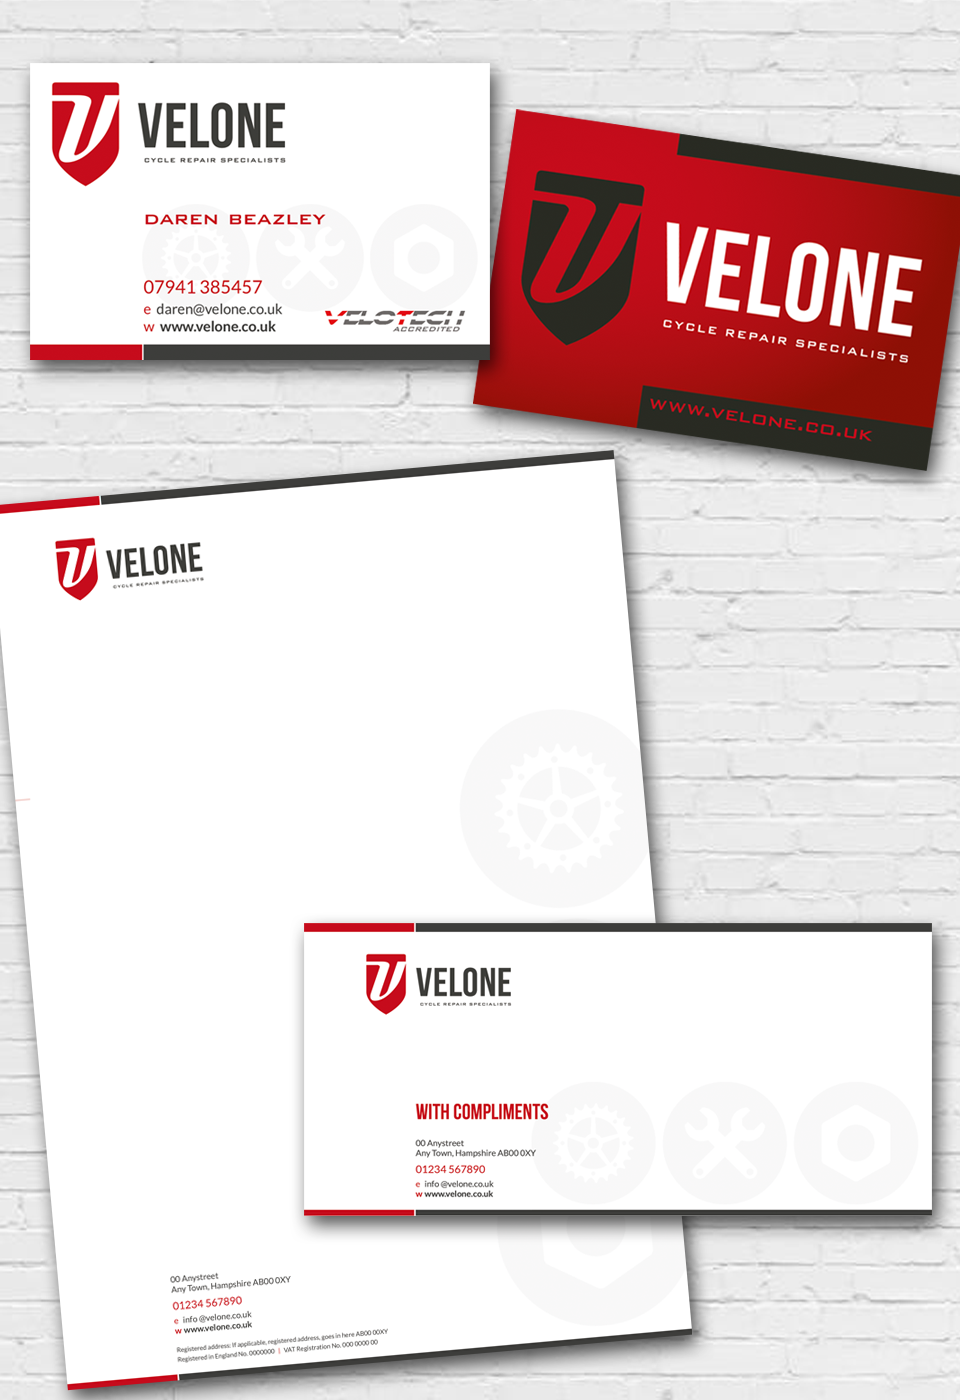 CaseStudies-Velone2.png